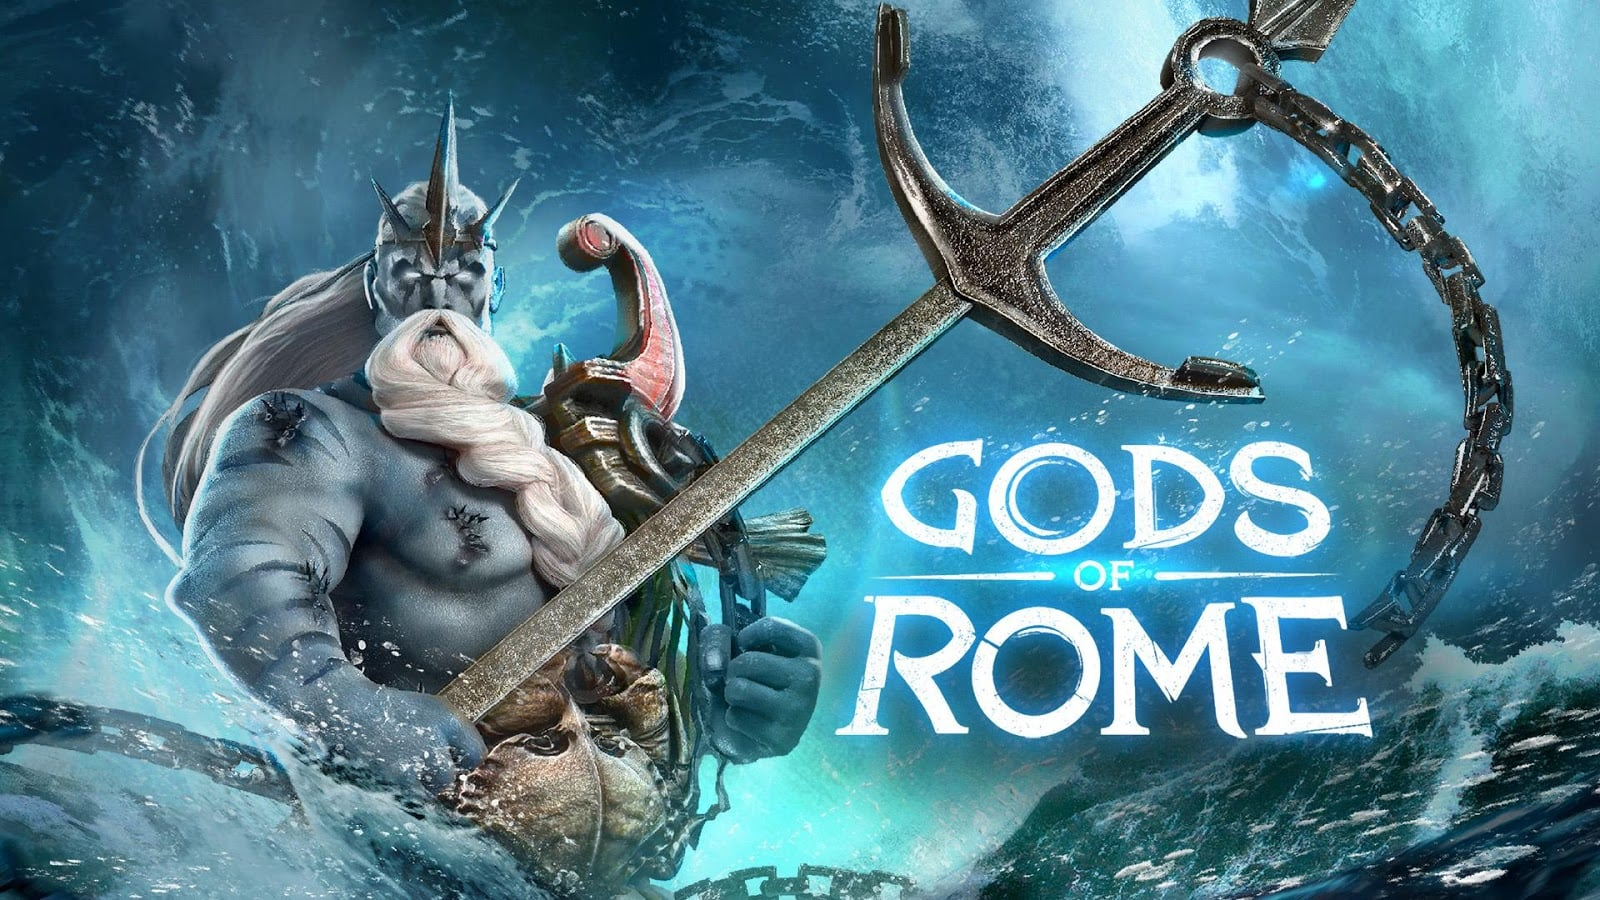 Gods of Rome for PC (Windows 10) Download